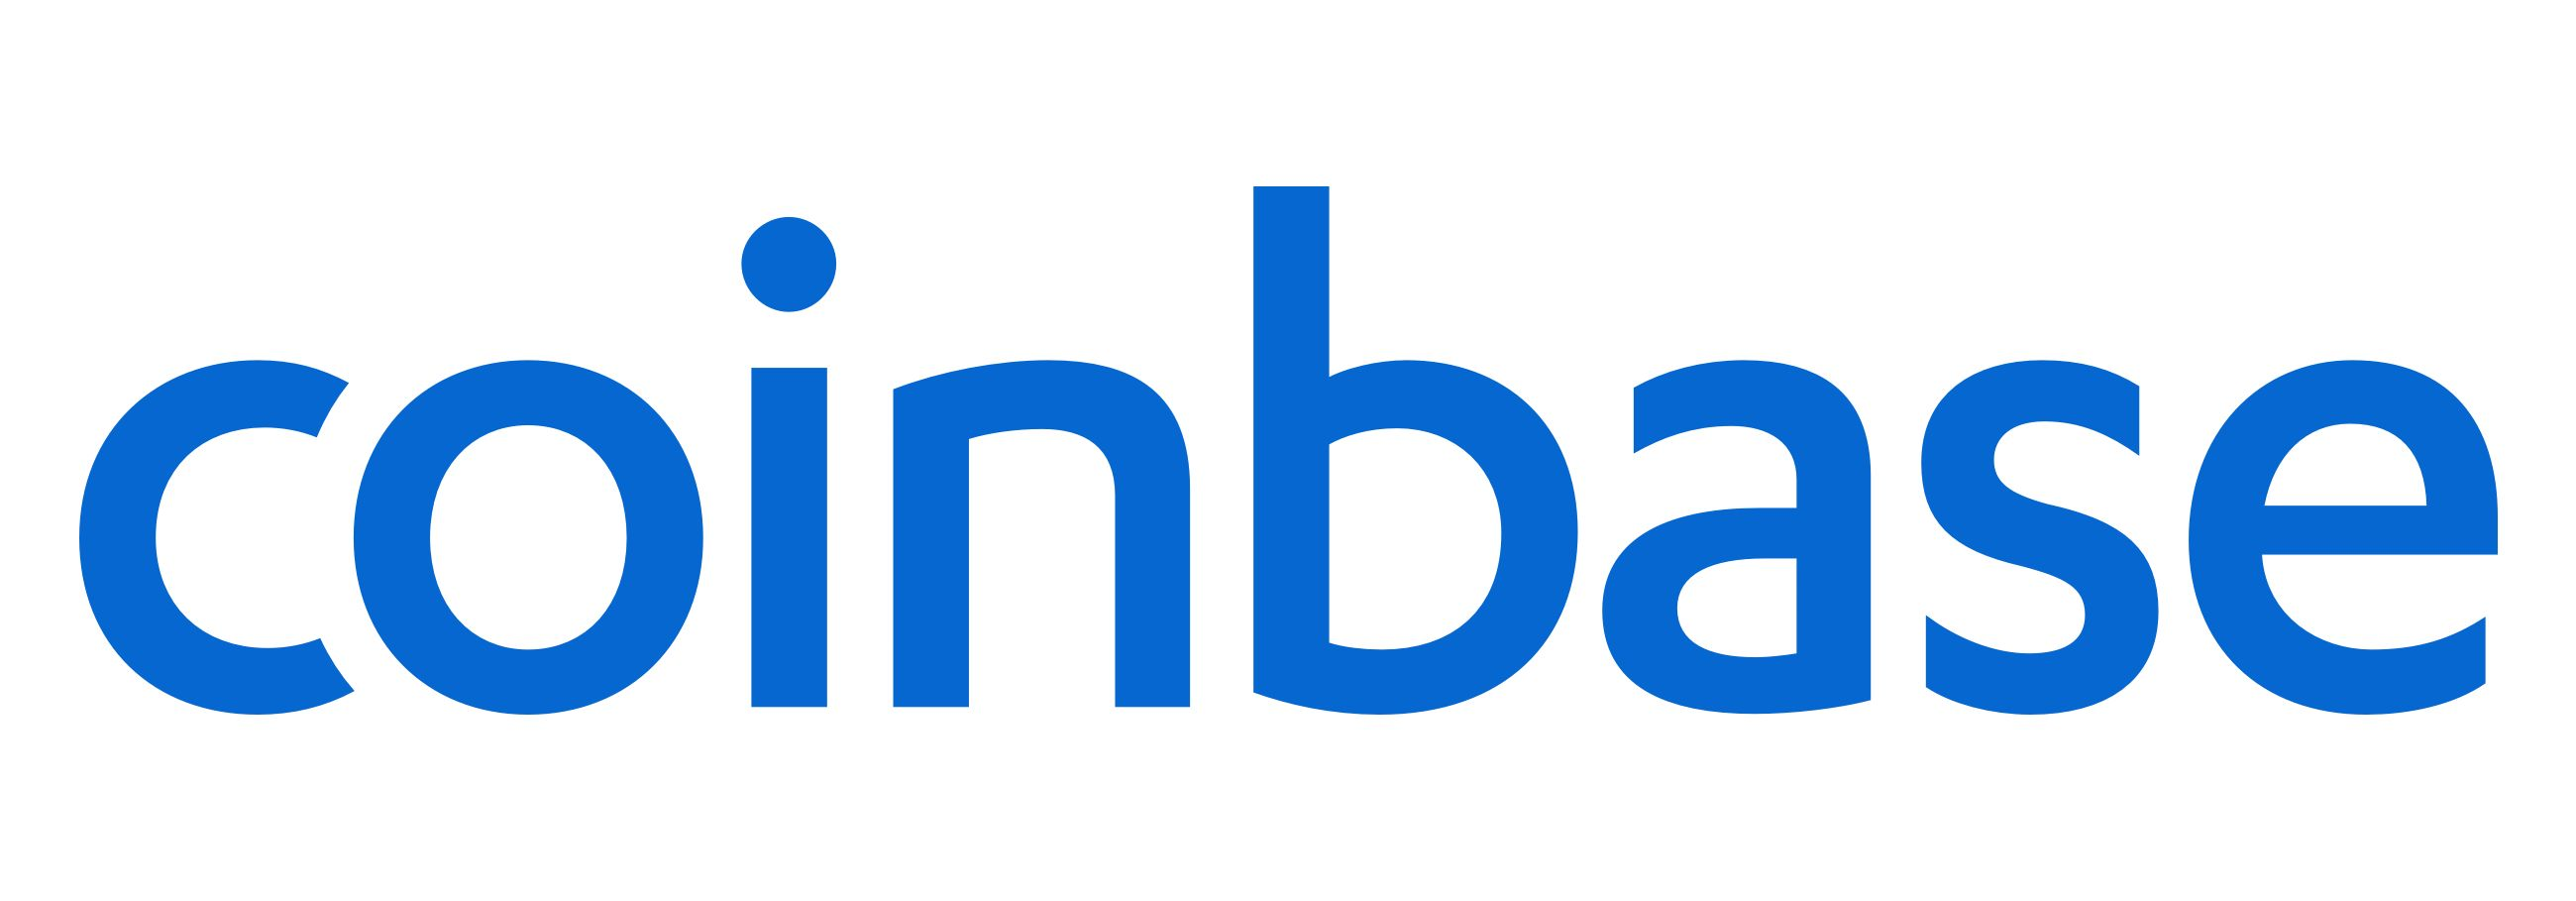 Coinbase was founded in 2012 by Brian Armstrong Fred Ehrsam